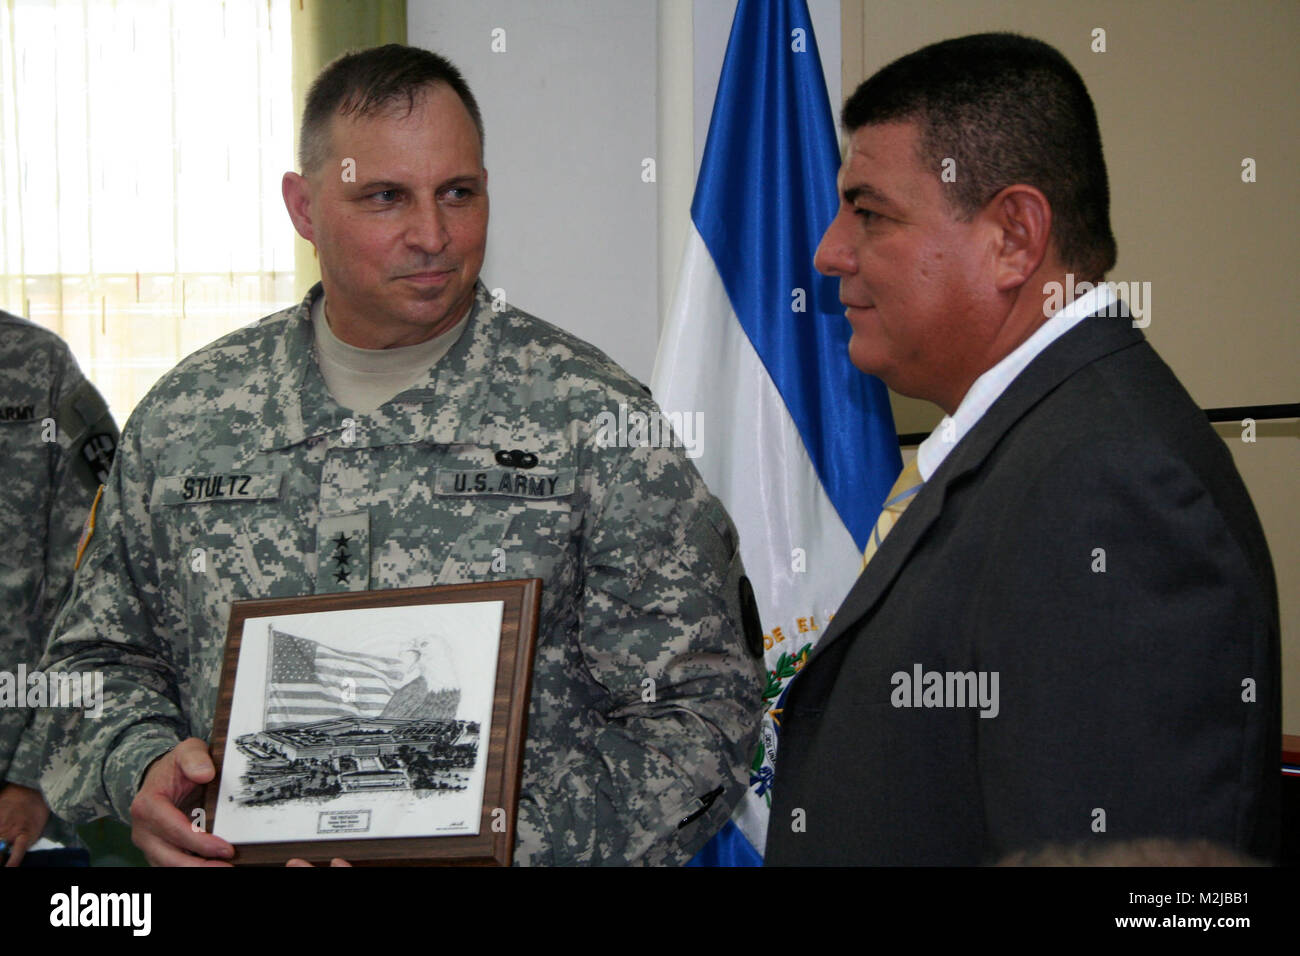 Lt. Gen. Jack C. Stultz, Chief, Army Reserve presents a gift to Apastepeque Mayor Juan Pablo Herrera Rivas during - Stock Image